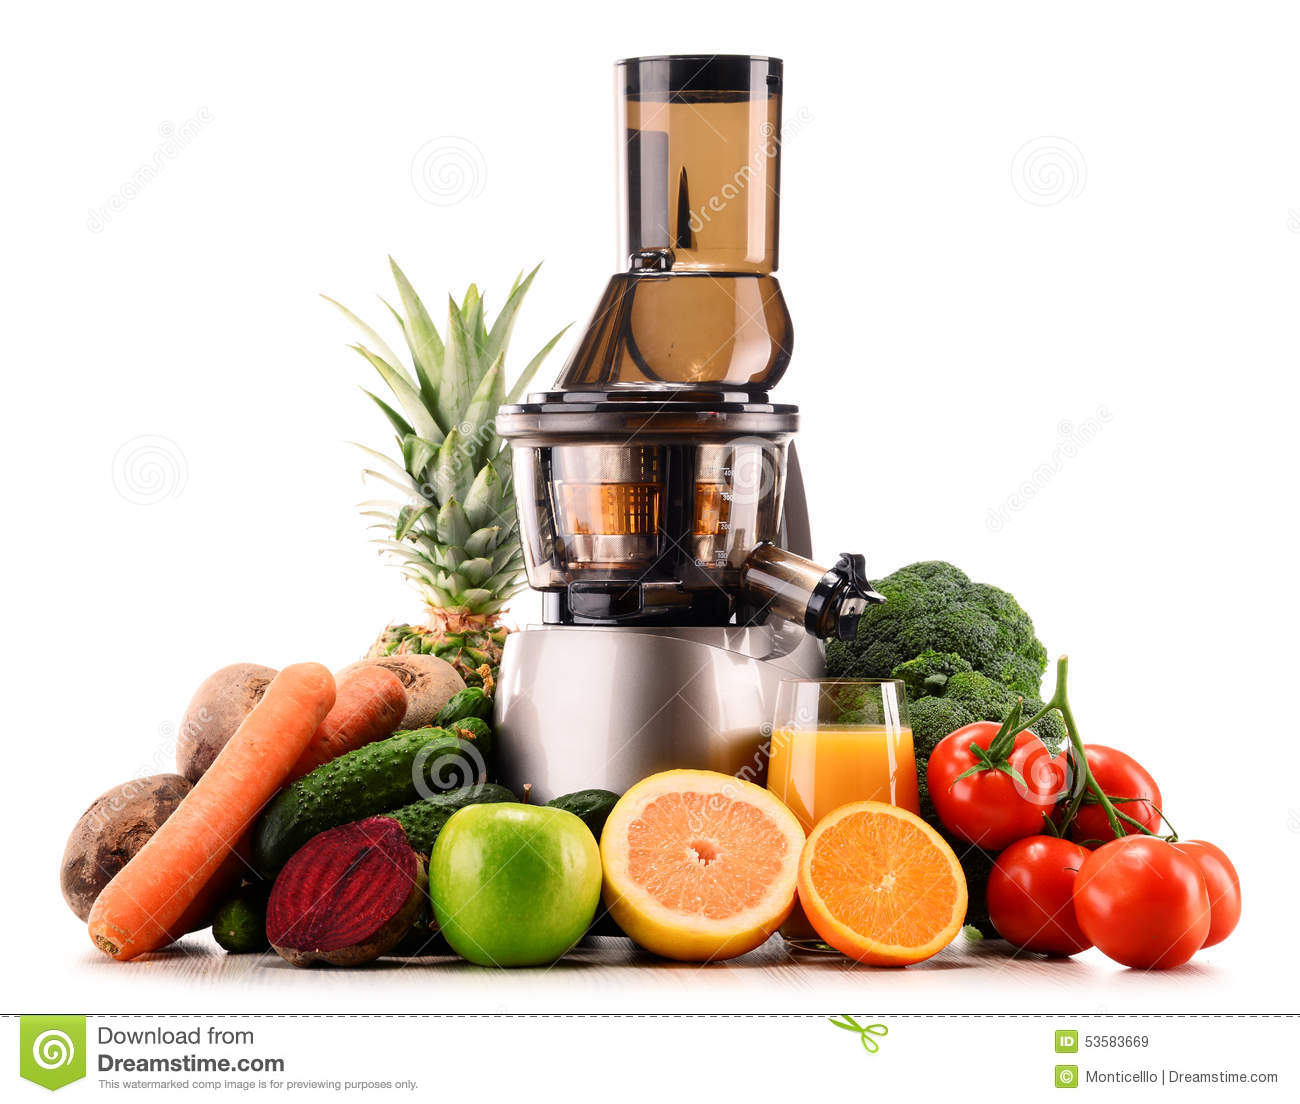 Slow Juicer Detox : Slow Juicer With Organic Fruits And vegetables On White ...